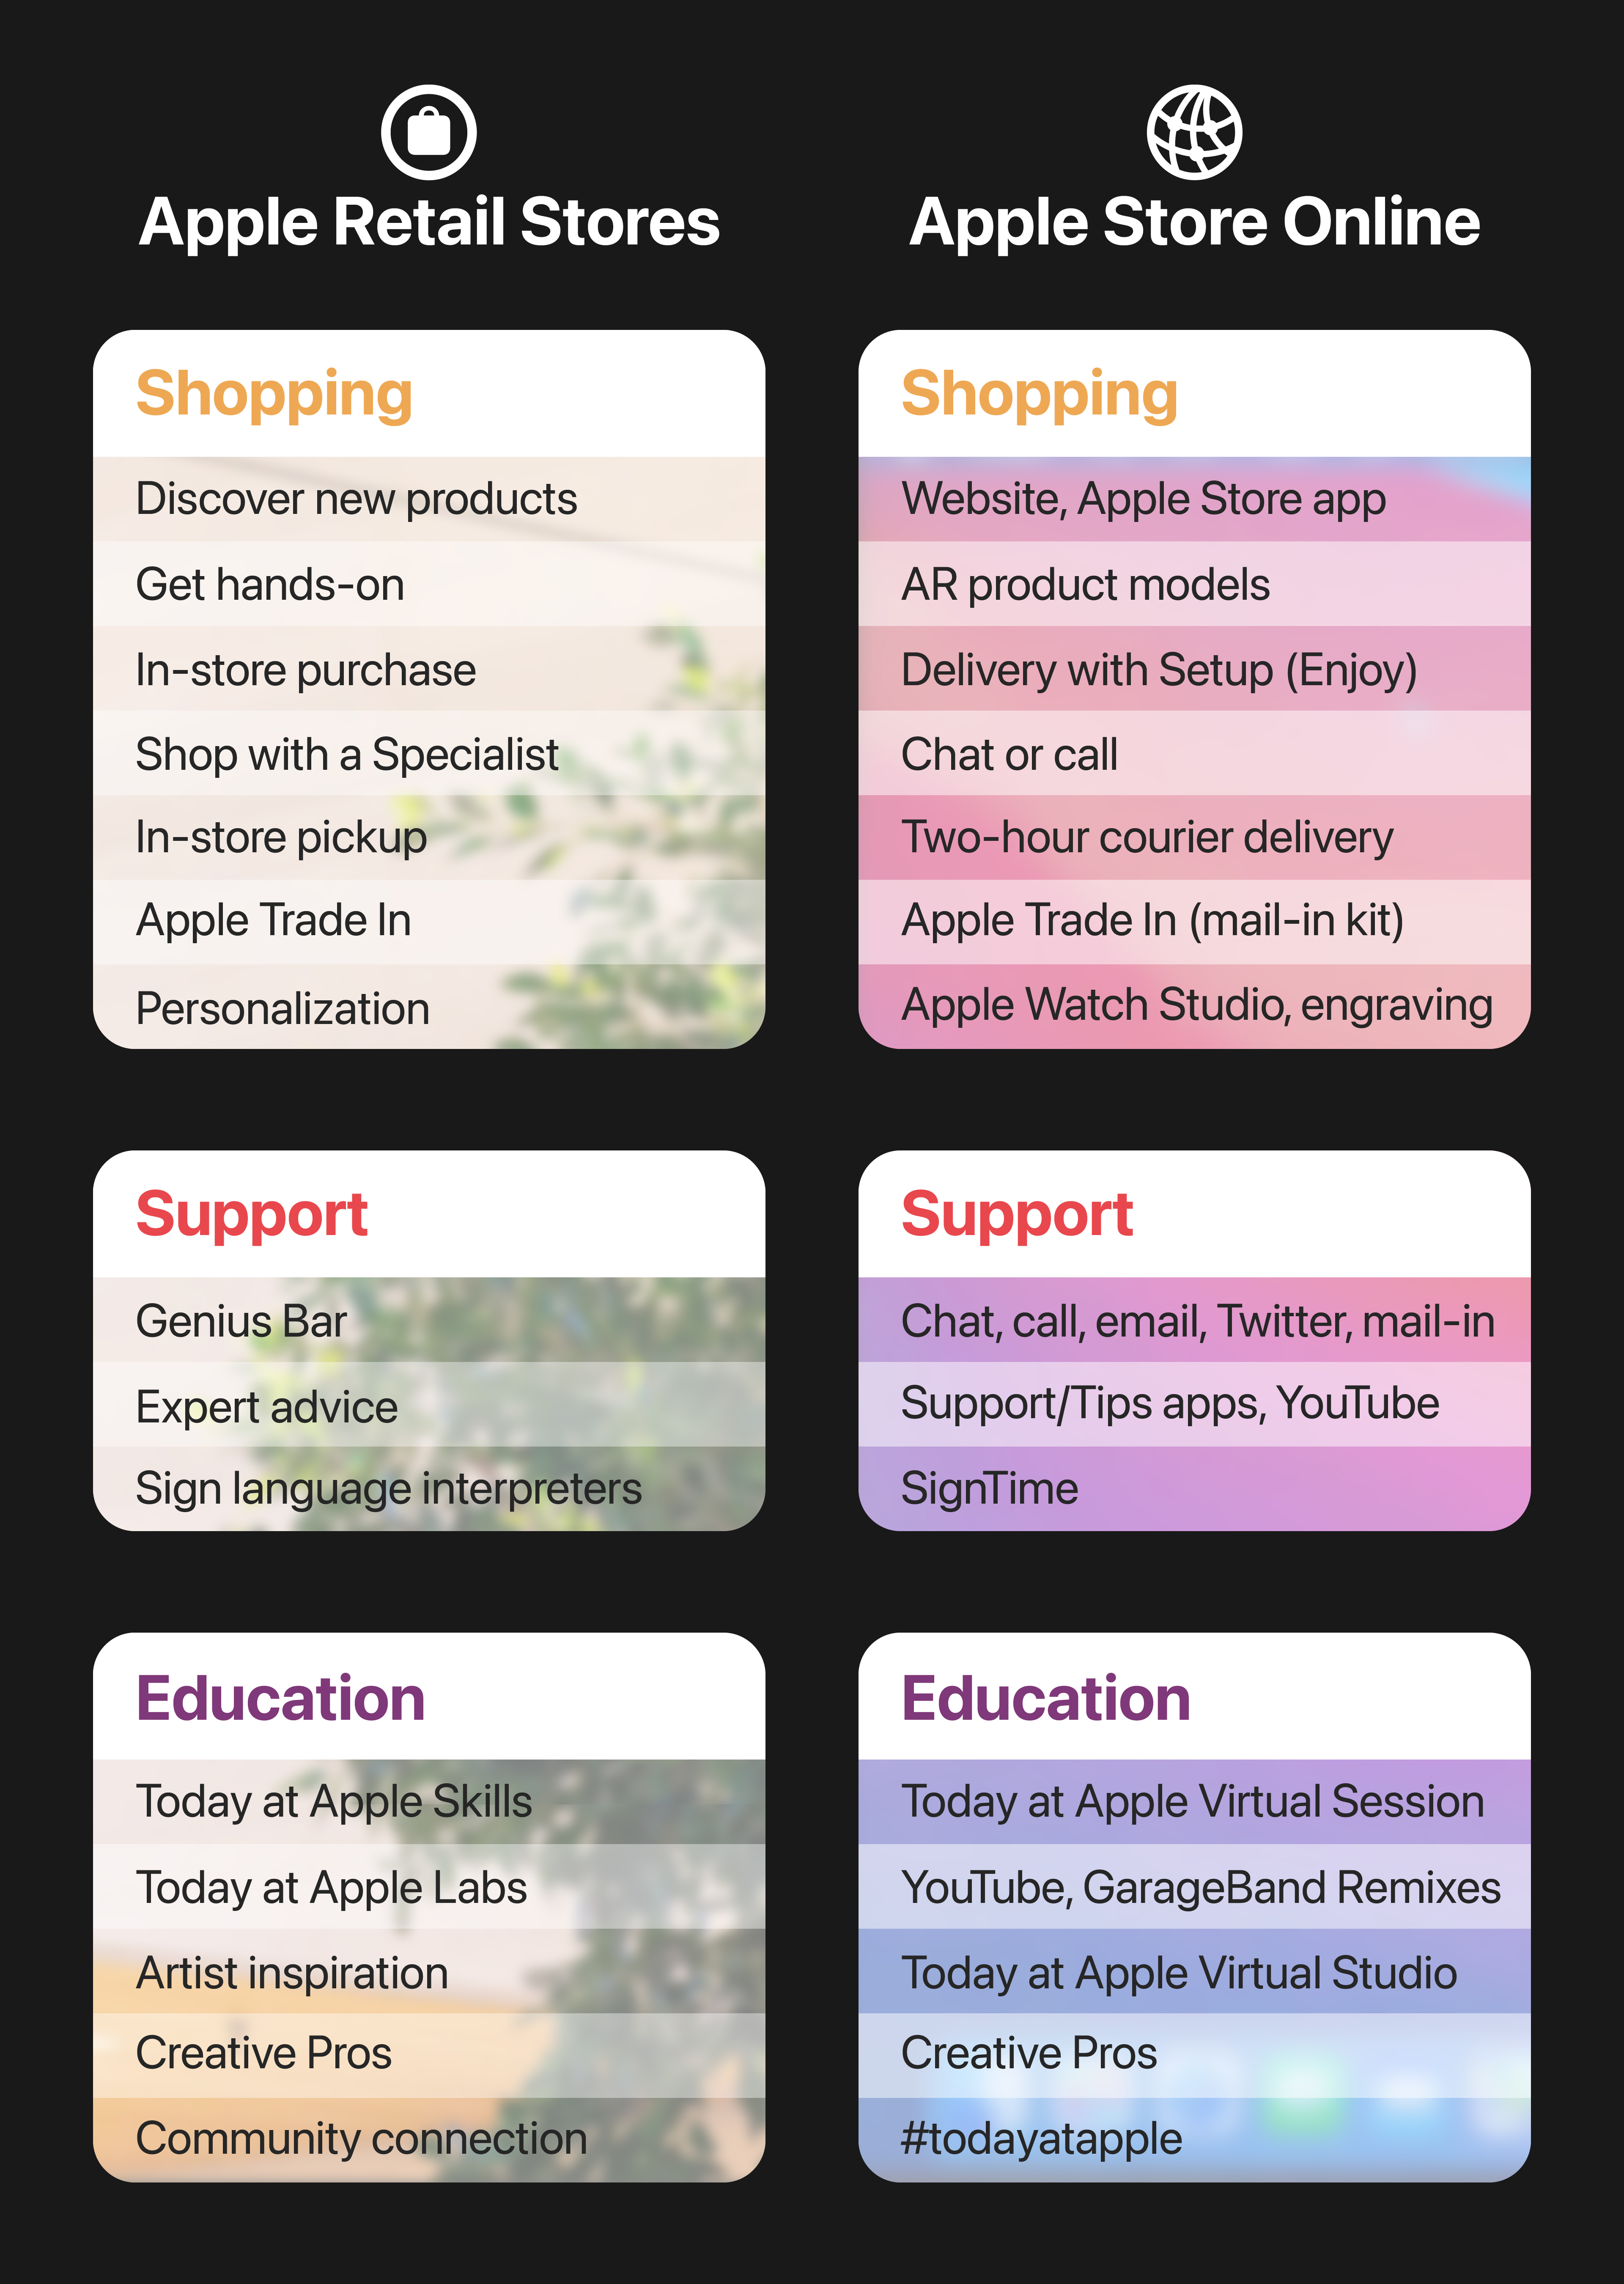 Comparison: Apple Retail Store and Apple Store Online services